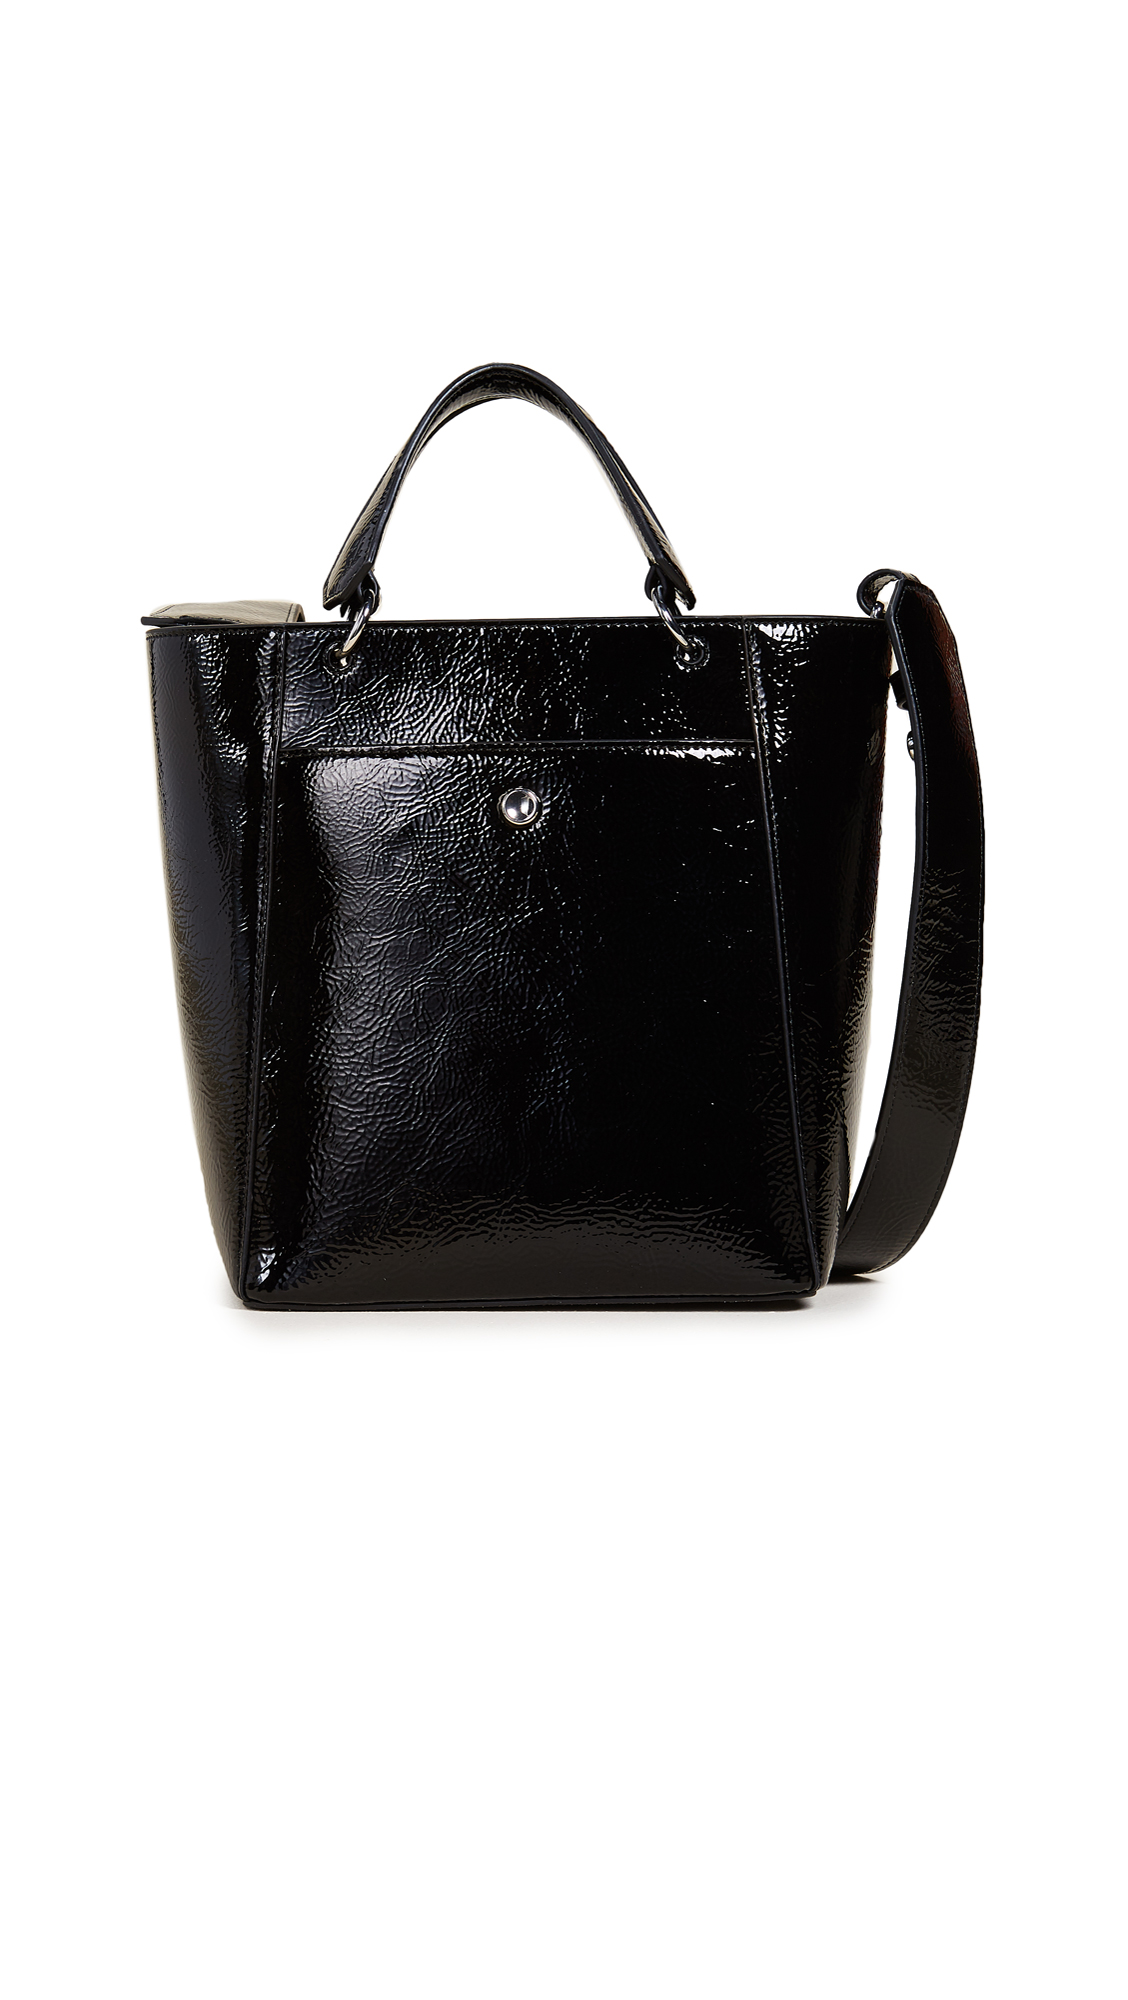 Elizabeth and James Eloise Petit Tote - Black